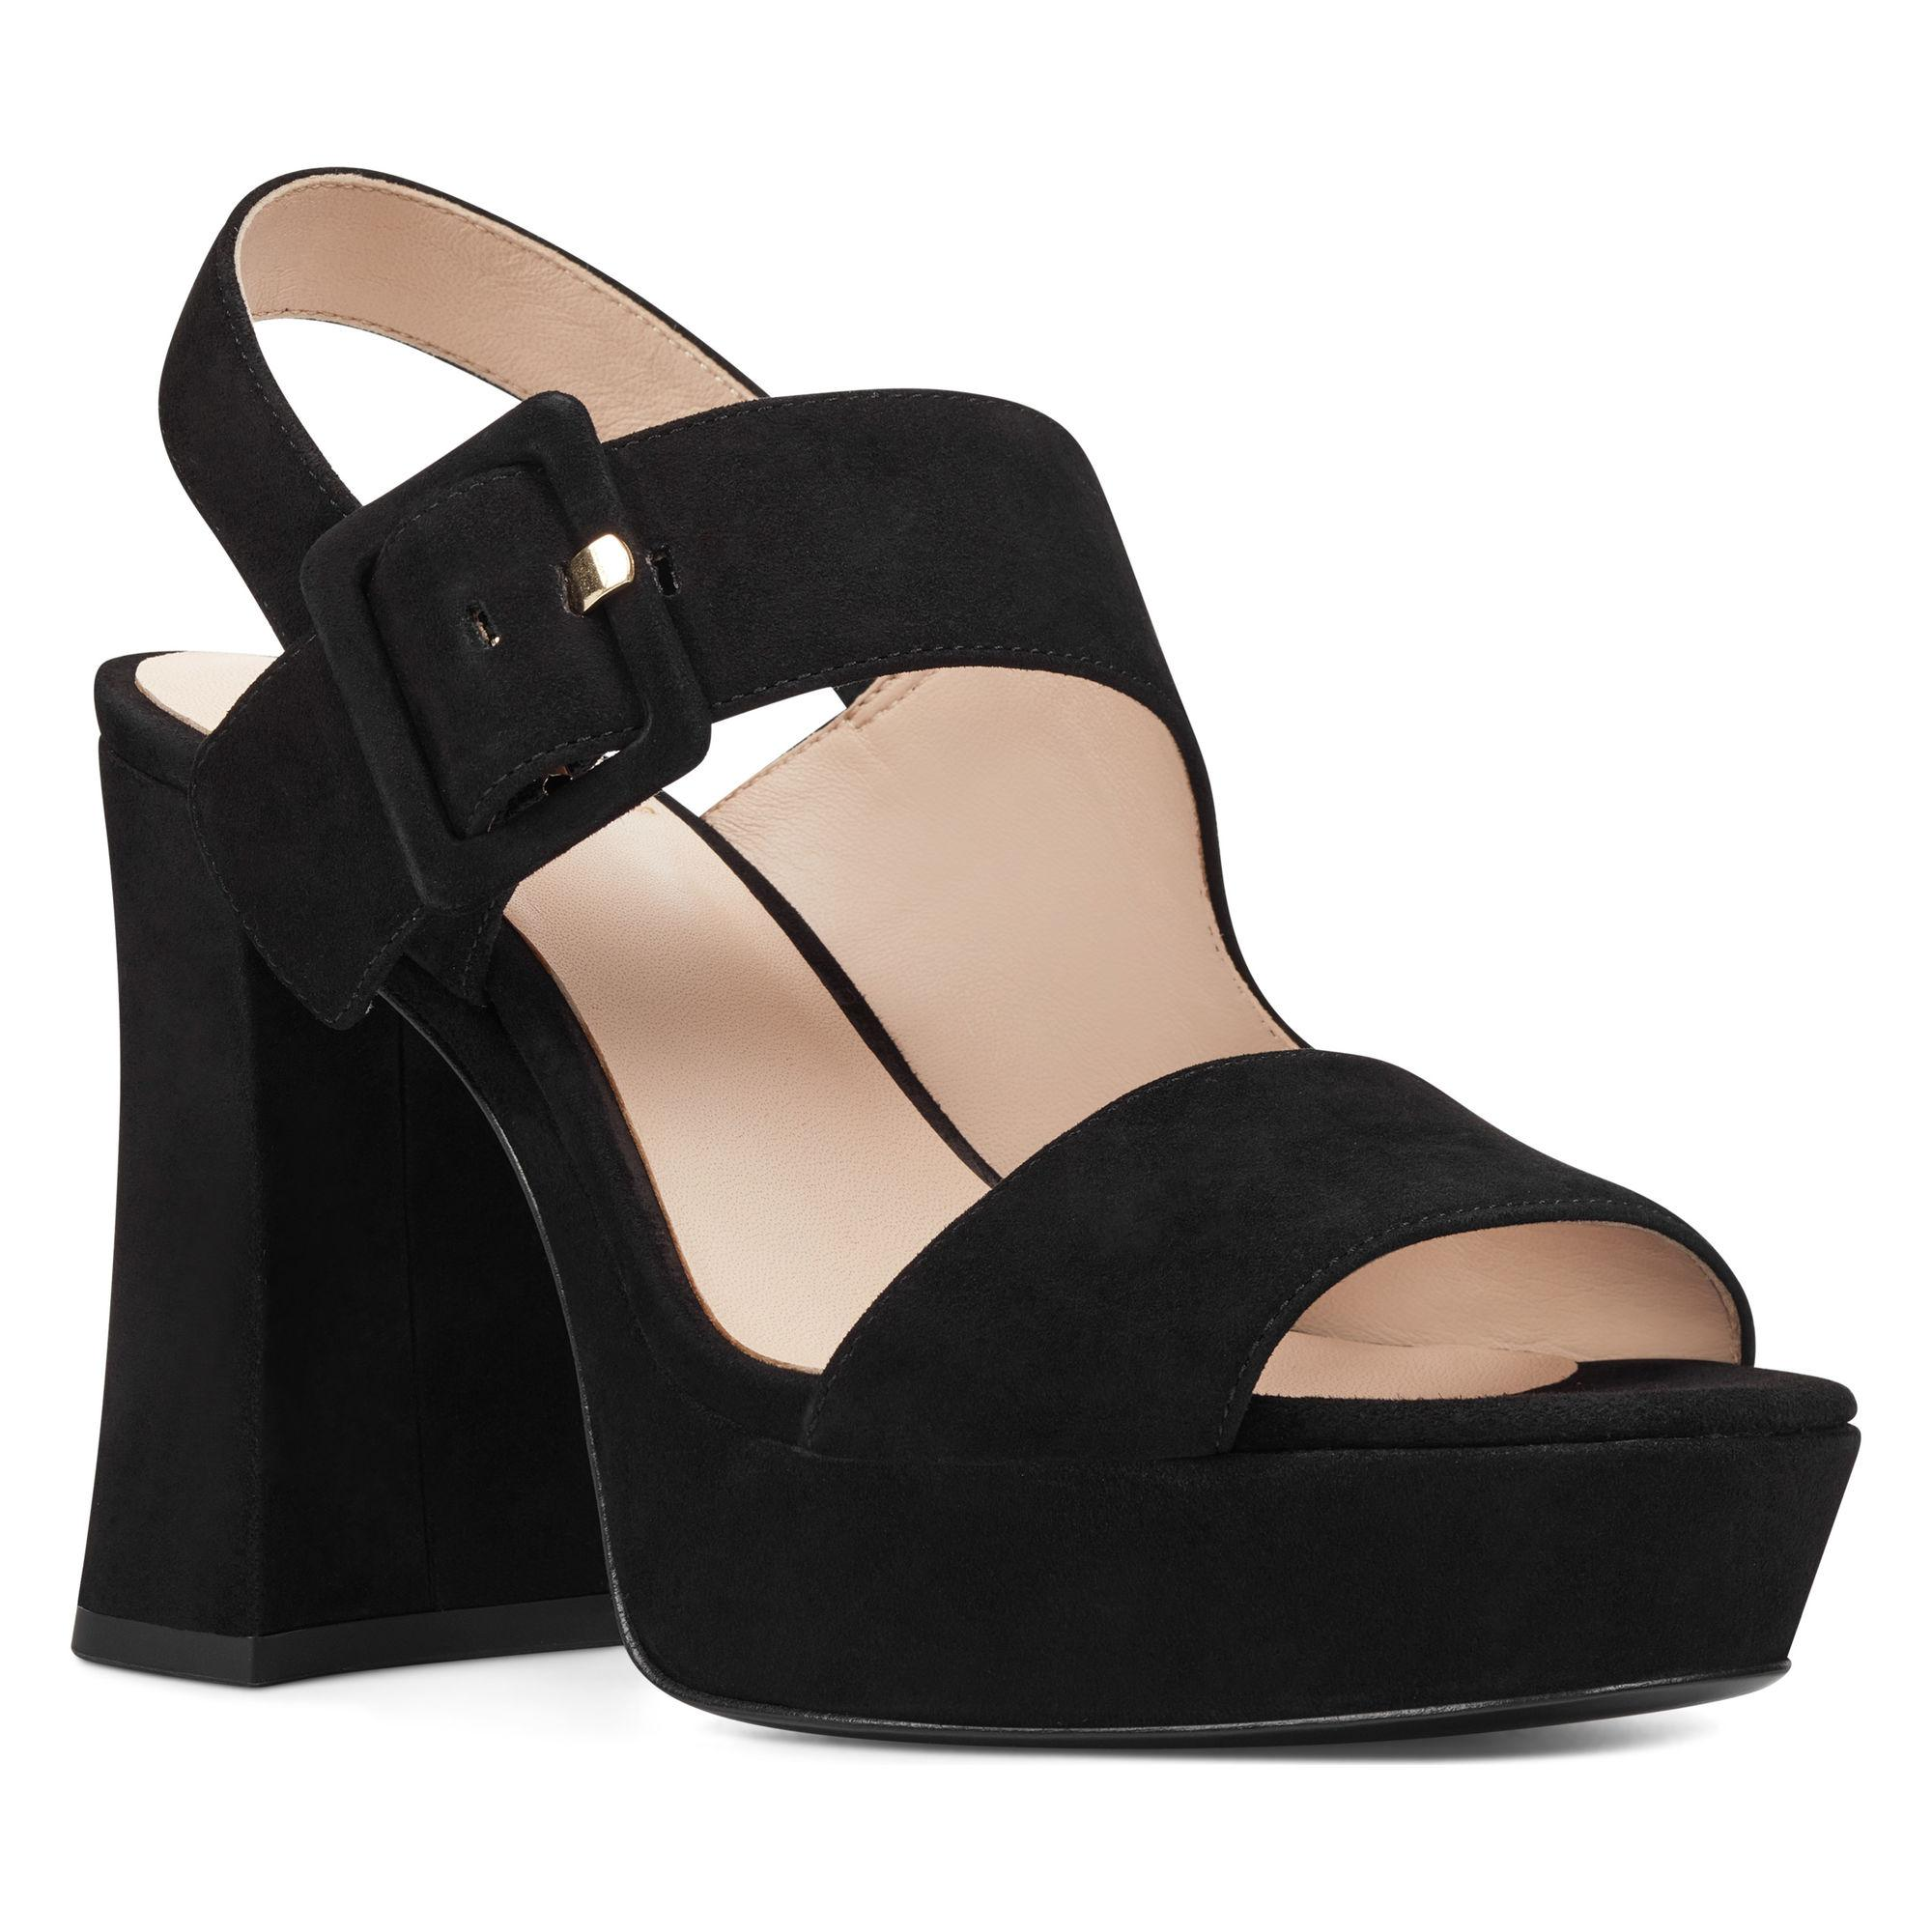 ecfc04bf88c Lyst - Nine West Lexine Platform Sandals in Black